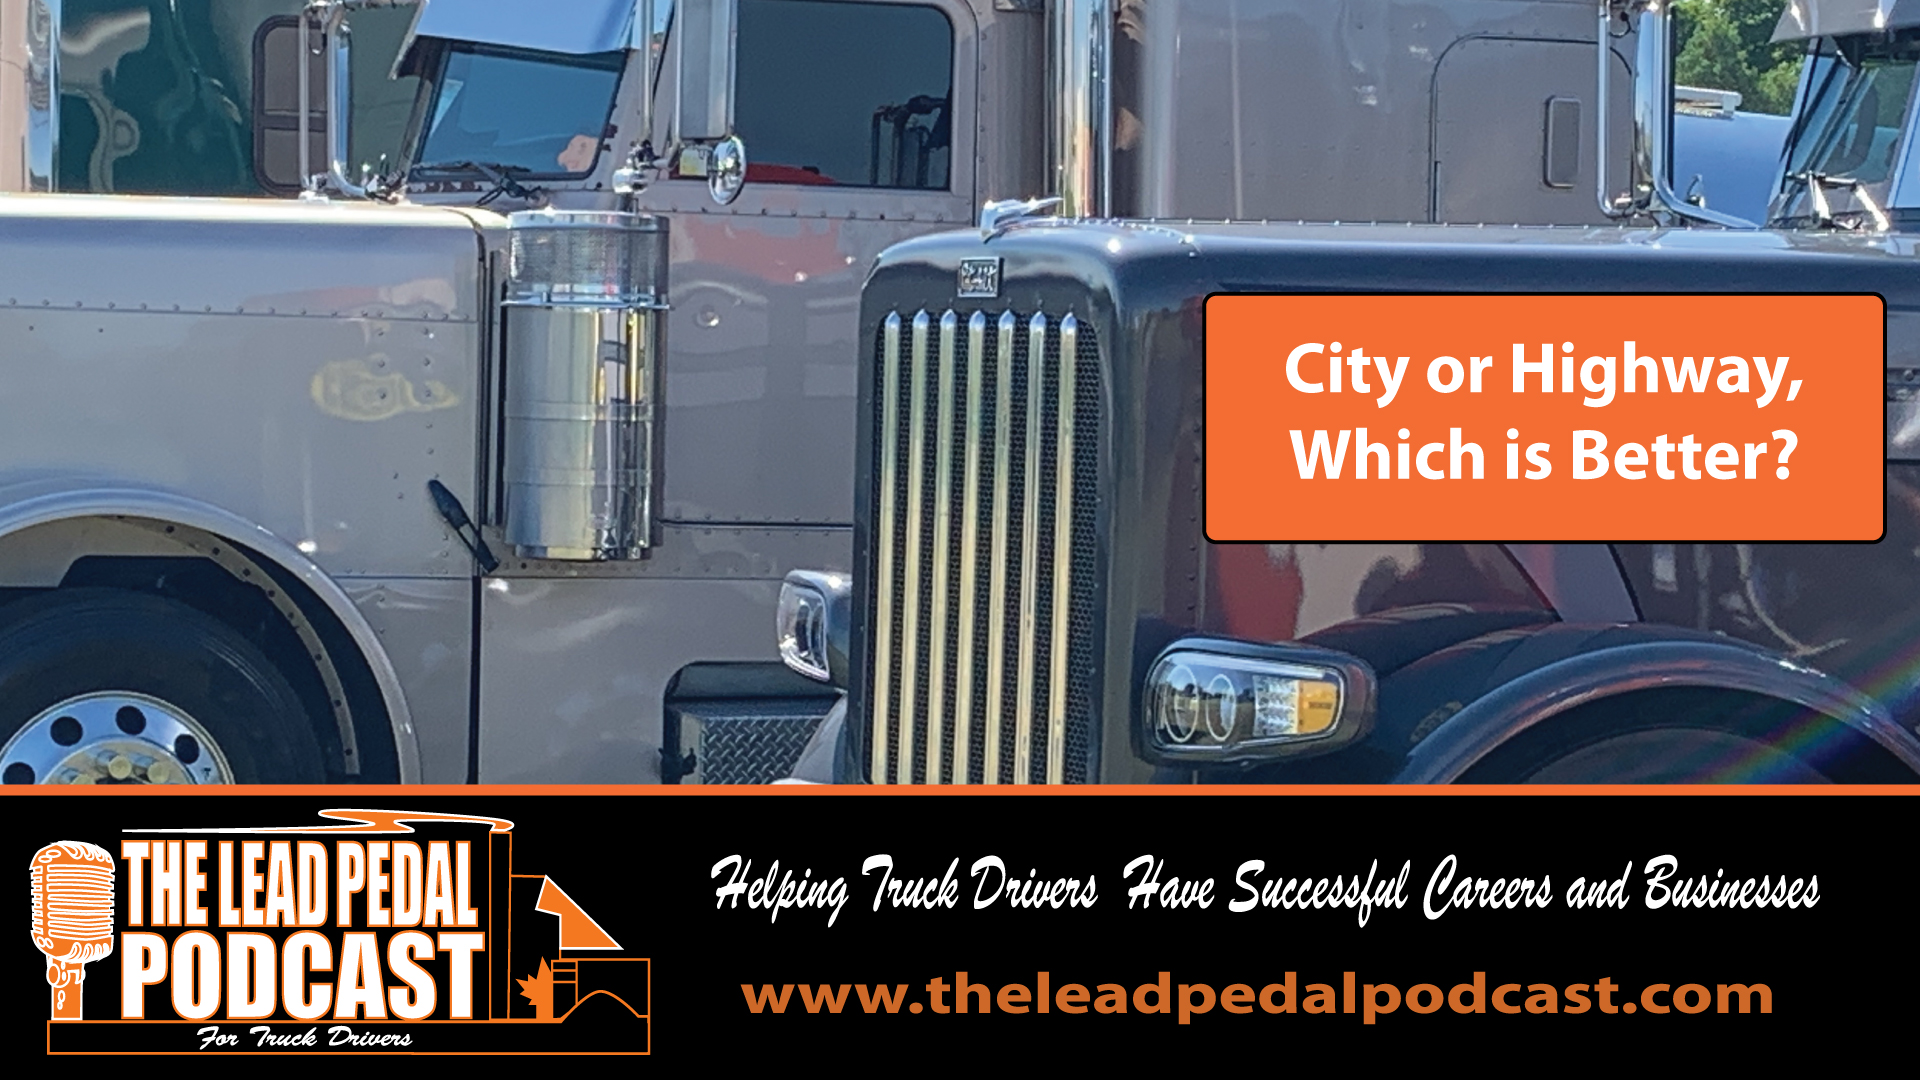 LP608 Should Your Work in the City or the Highway as a Truck Driver